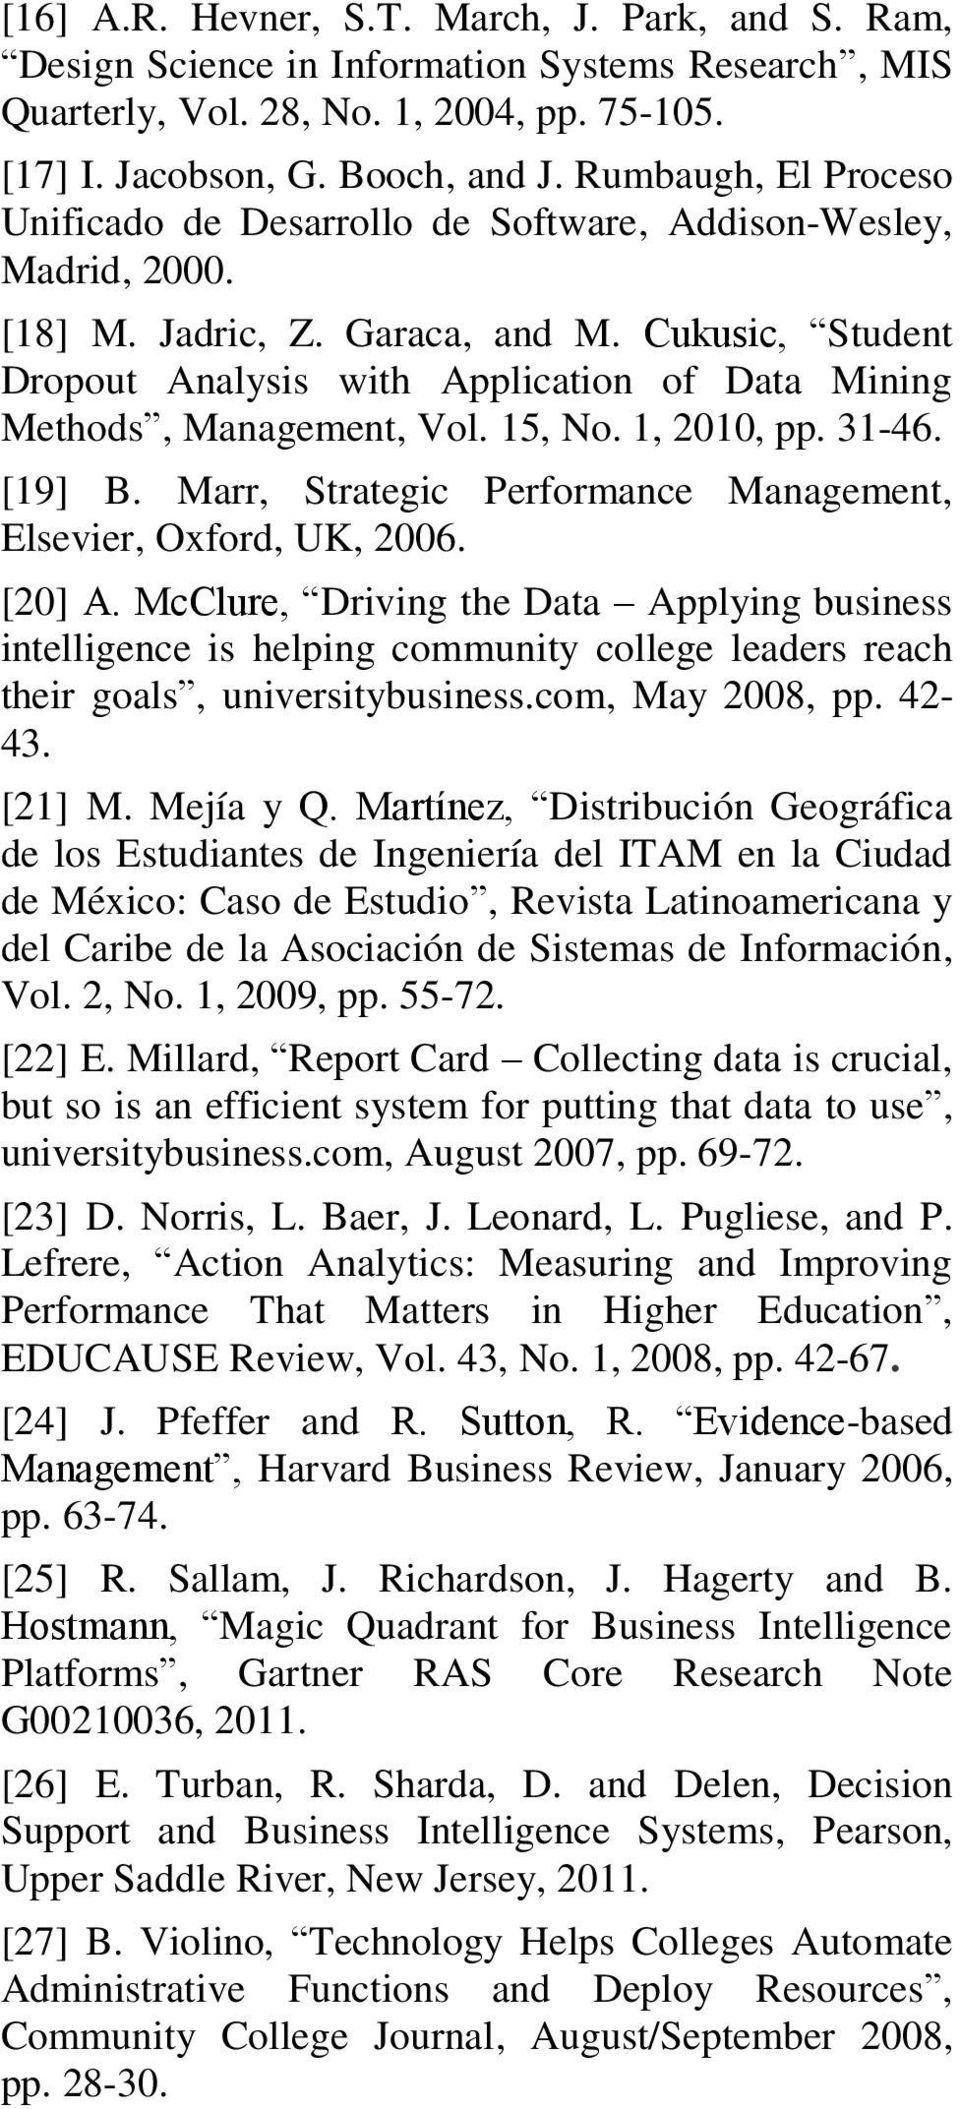 Cukusic, Student Dropout Analysis with Application of Data Mining Methods, Management, Vol. 15, No. 1, 2010, pp. 31-46. [19] B. Marr, Strategic Performance Management, Elsevier, Oxford, UK, 2006.